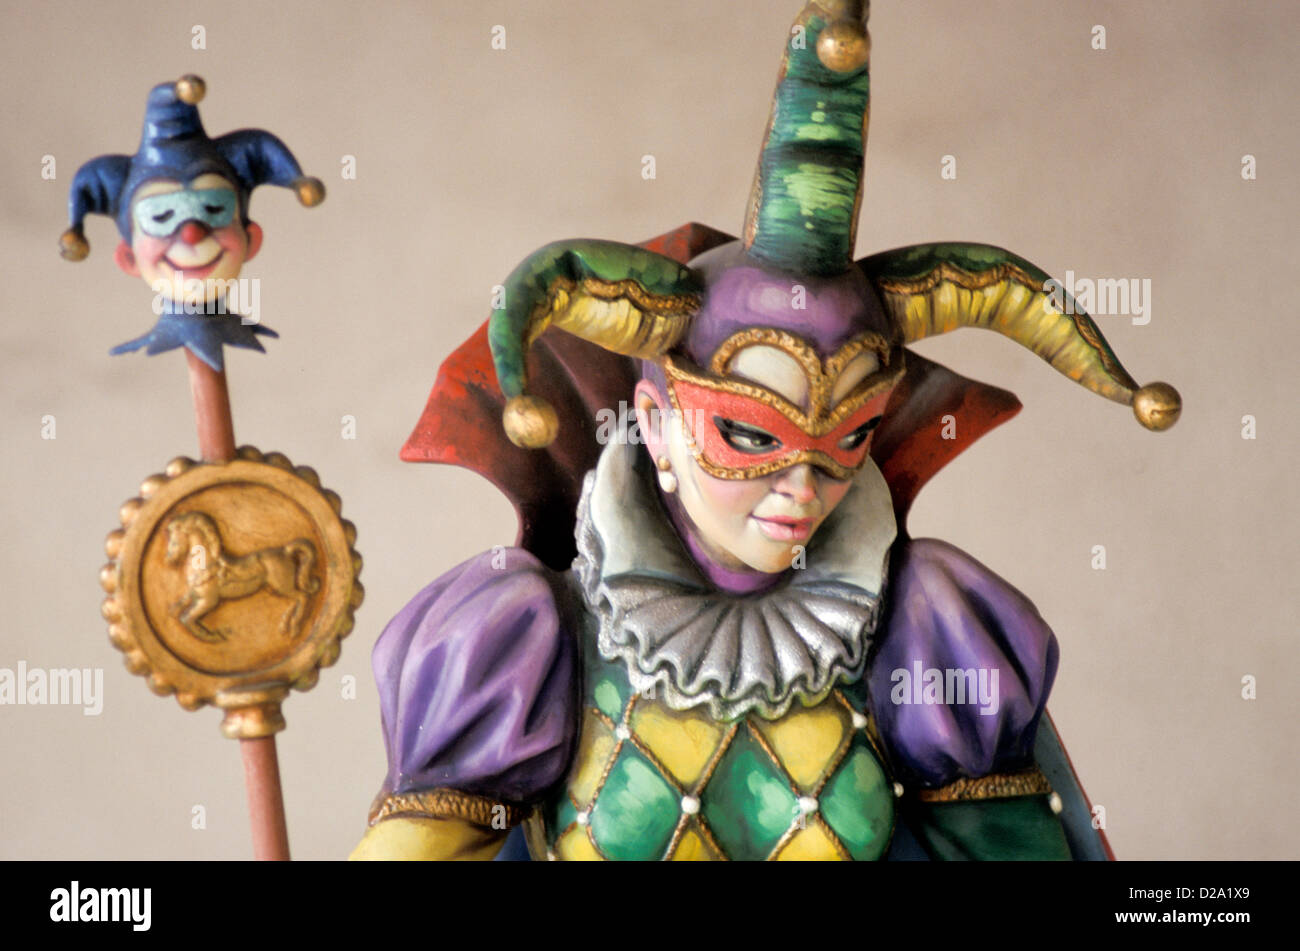 Louisiana. New Orleans. Statue Of Mardi Gras Court Fool. - Stock Image